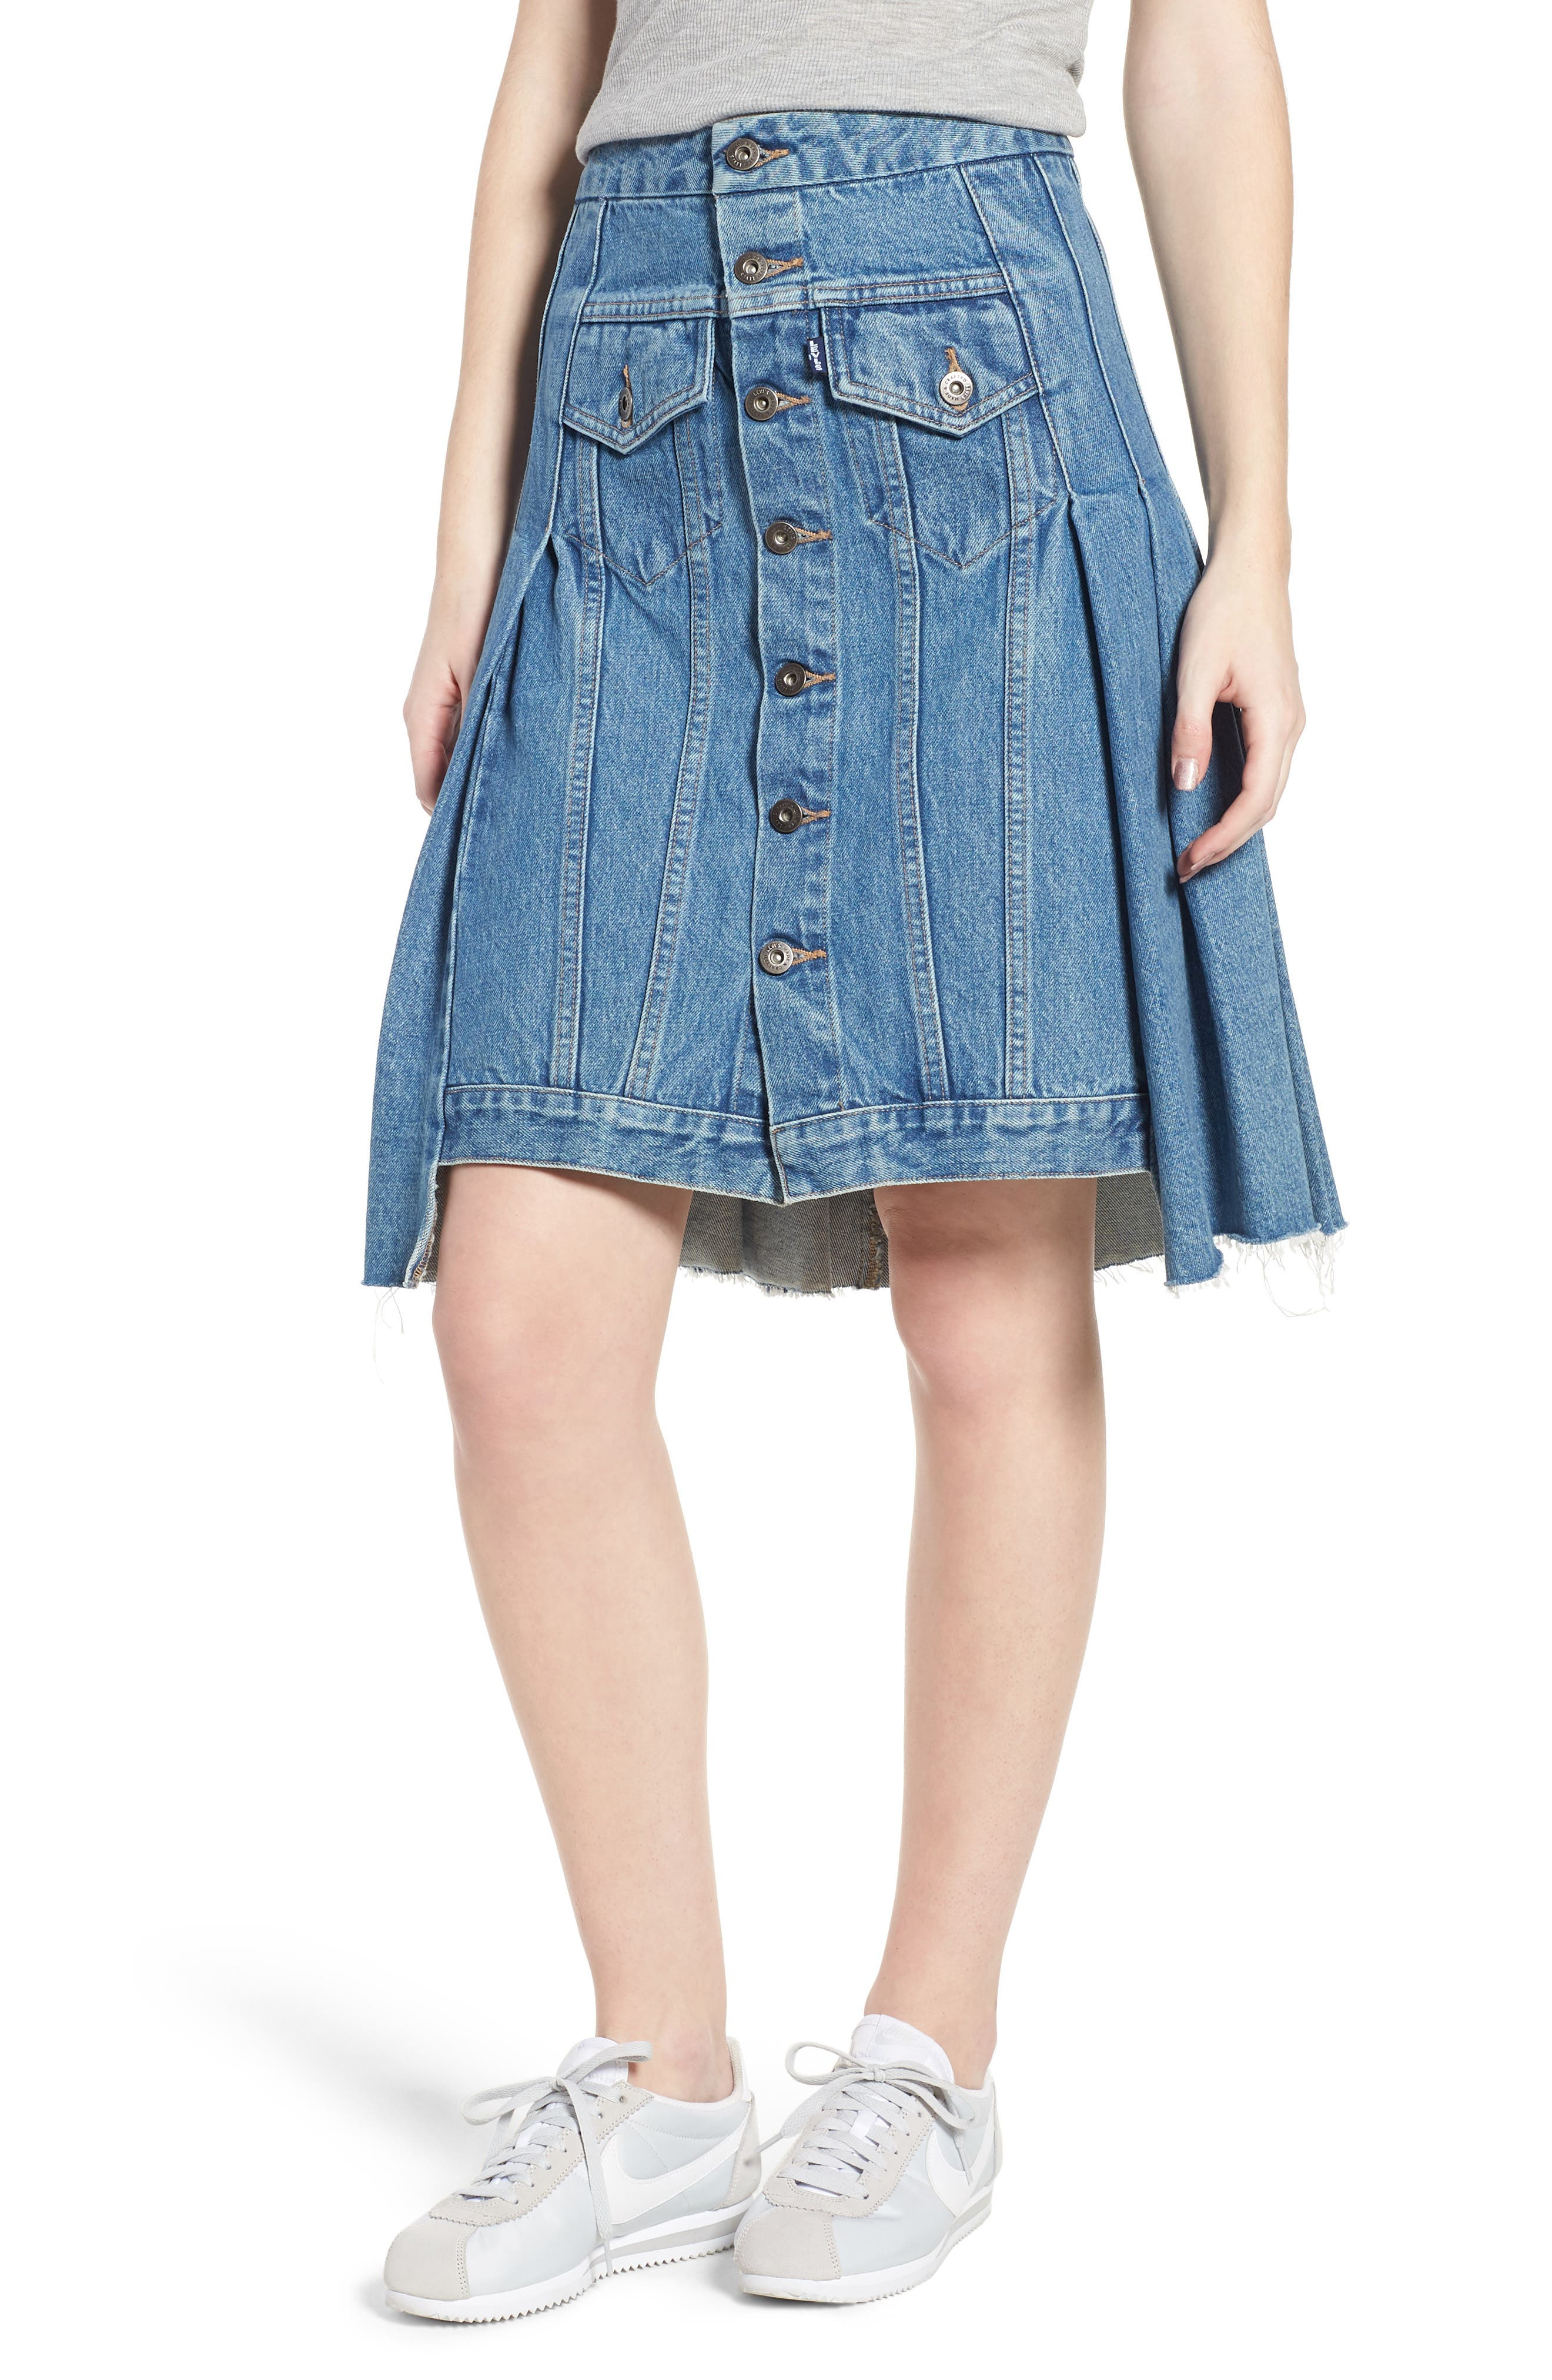 LEVI'S<SUP>®</SUP> MADE & CRAFTED<SUP>™</SUP> Type III Pleated Denim Skirt, Main, color, 400